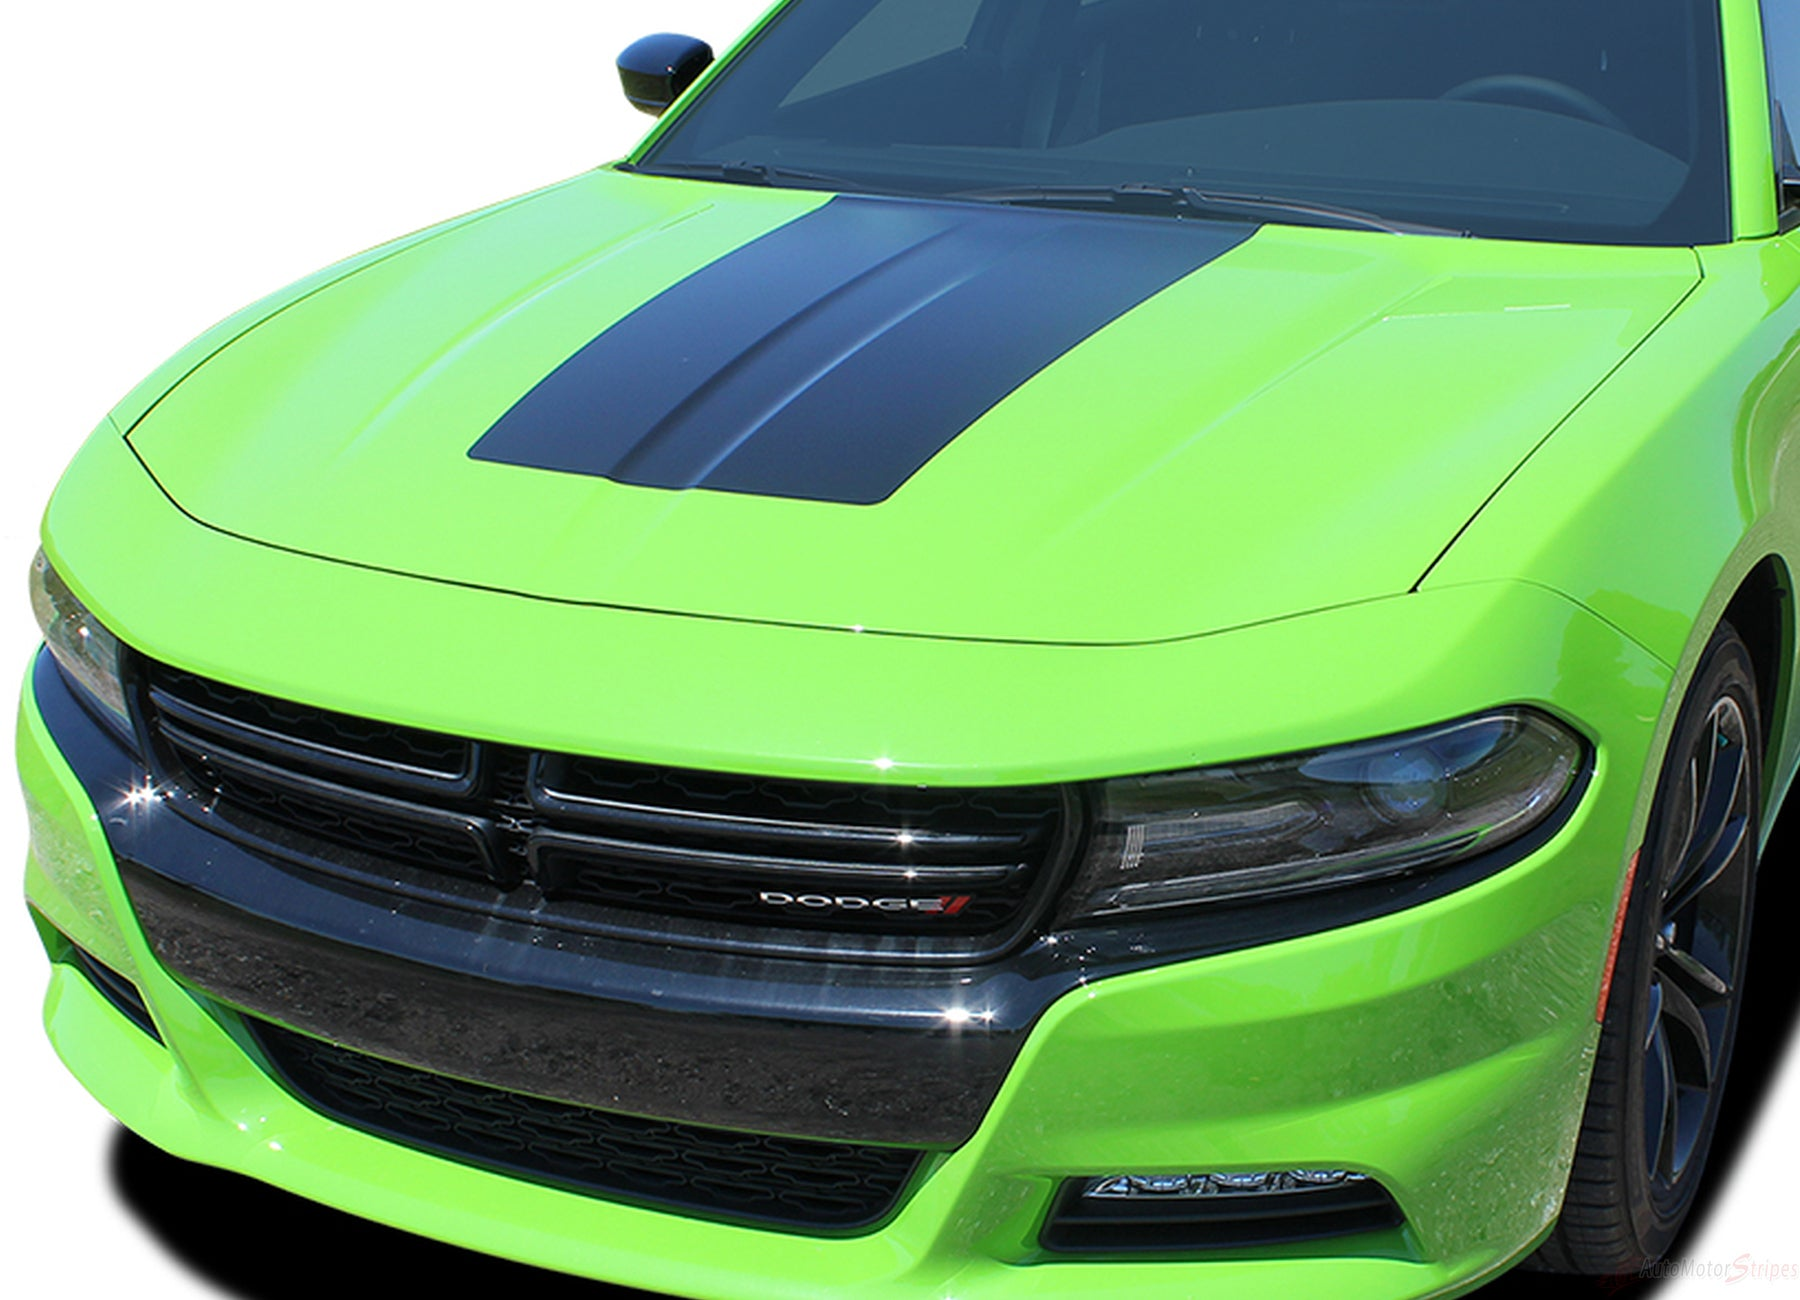 2015 2018 Dodge Charger Center Hood Vinyl Rally Stripes Graphic Decal Auto Motor Stripes